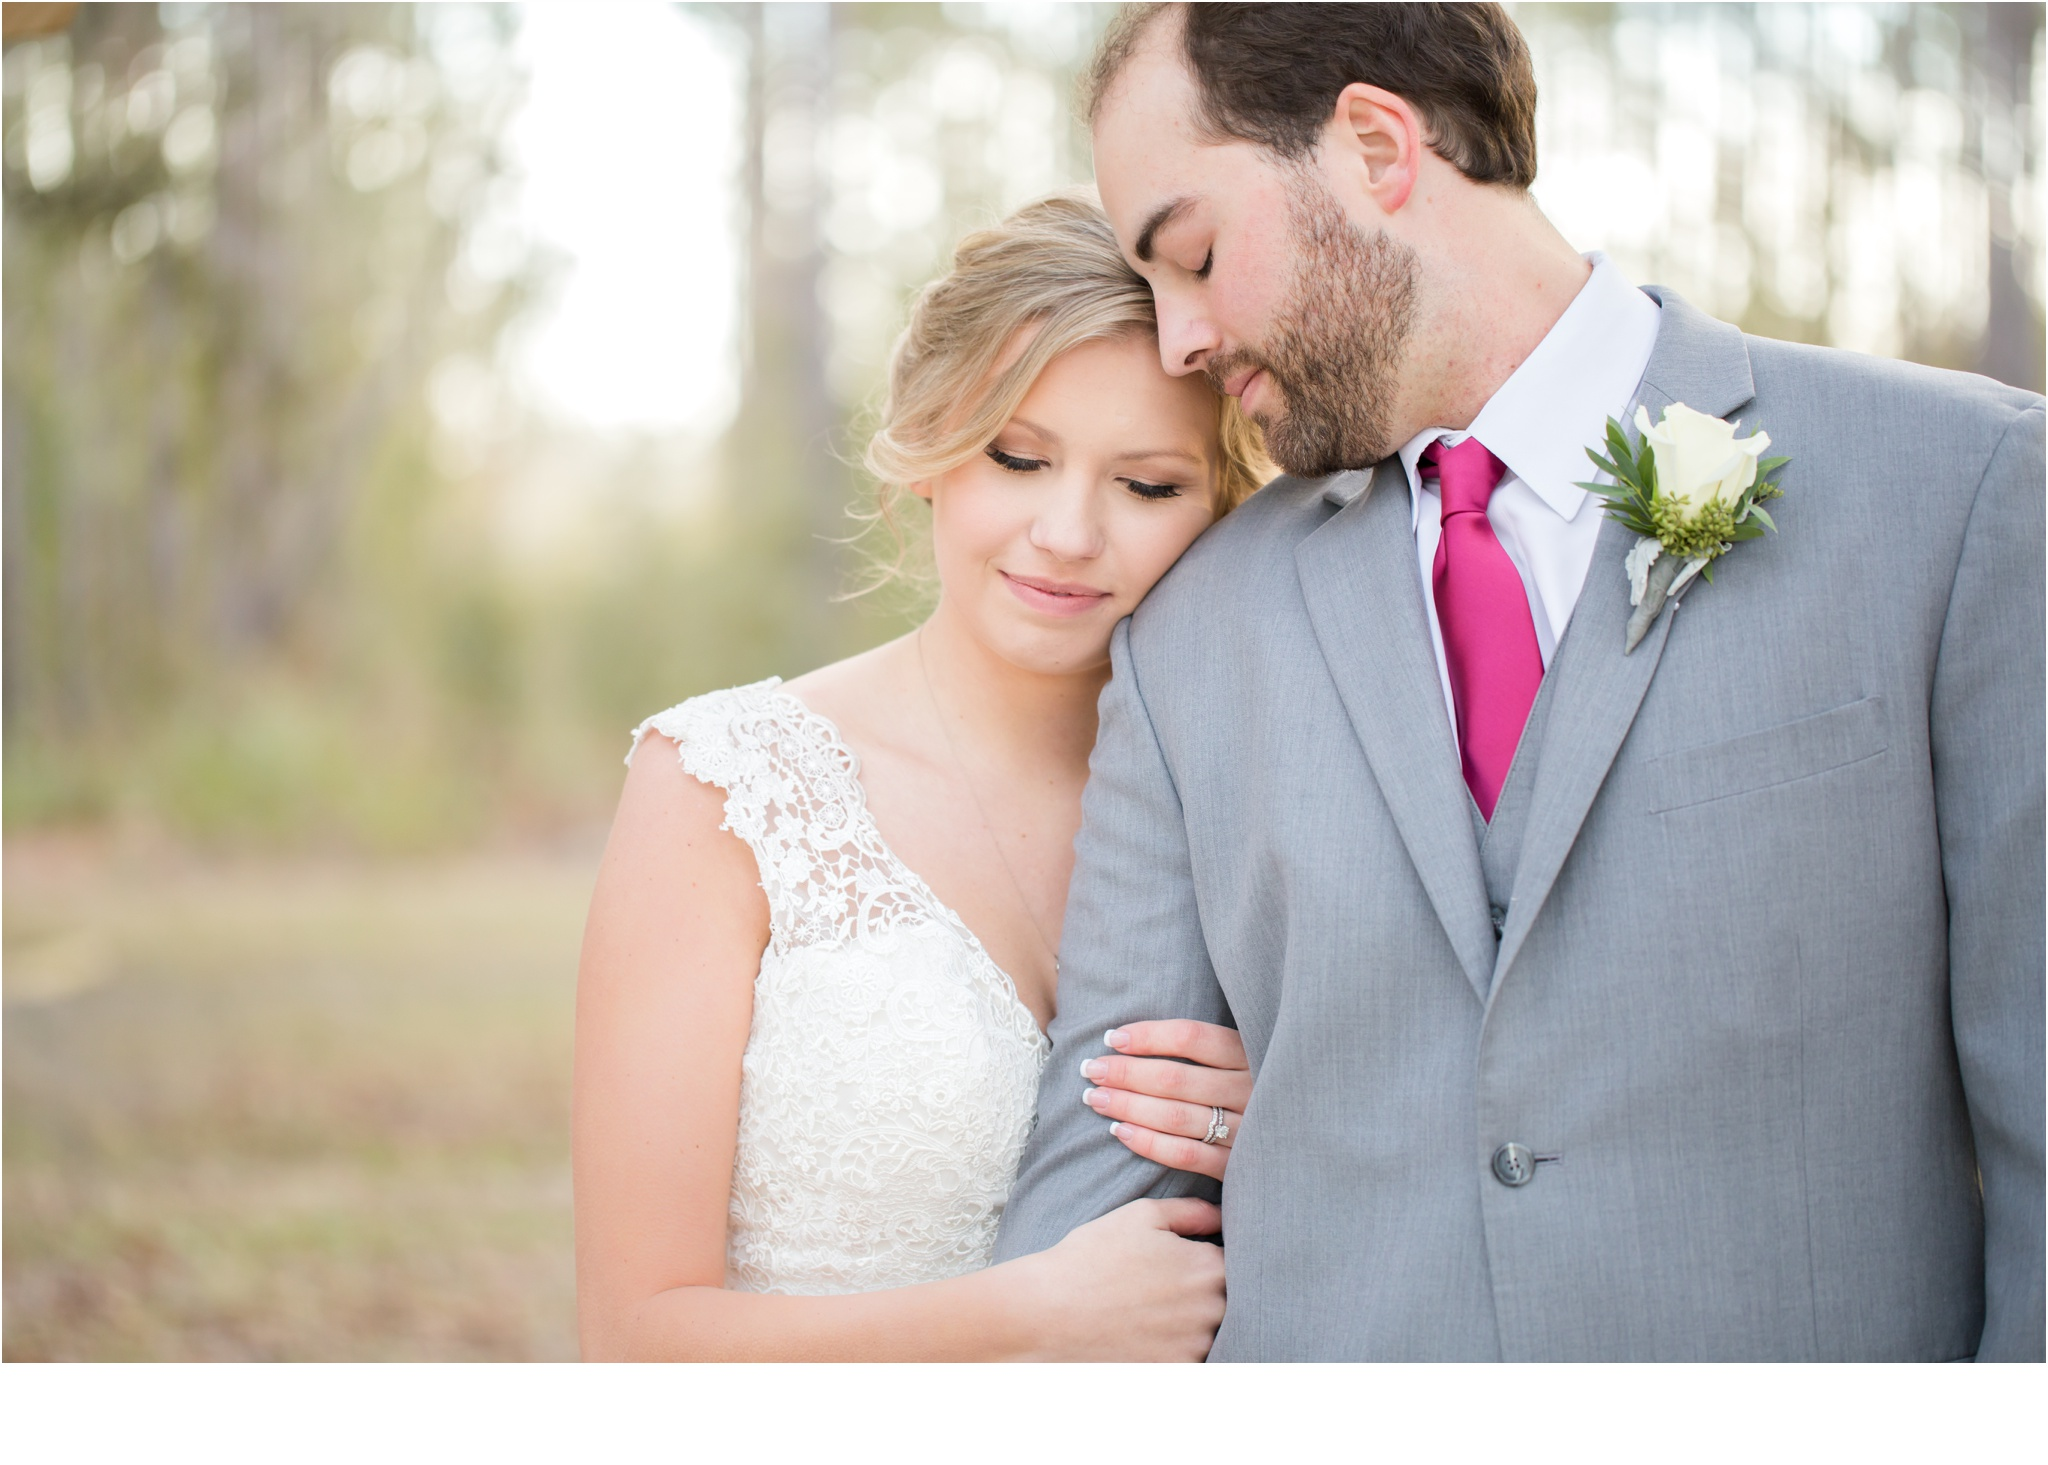 Rainey_Gregg_Photography_St._Simons_Island_Georgia_California_Wedding_Portrait_Photography_0502.jpg